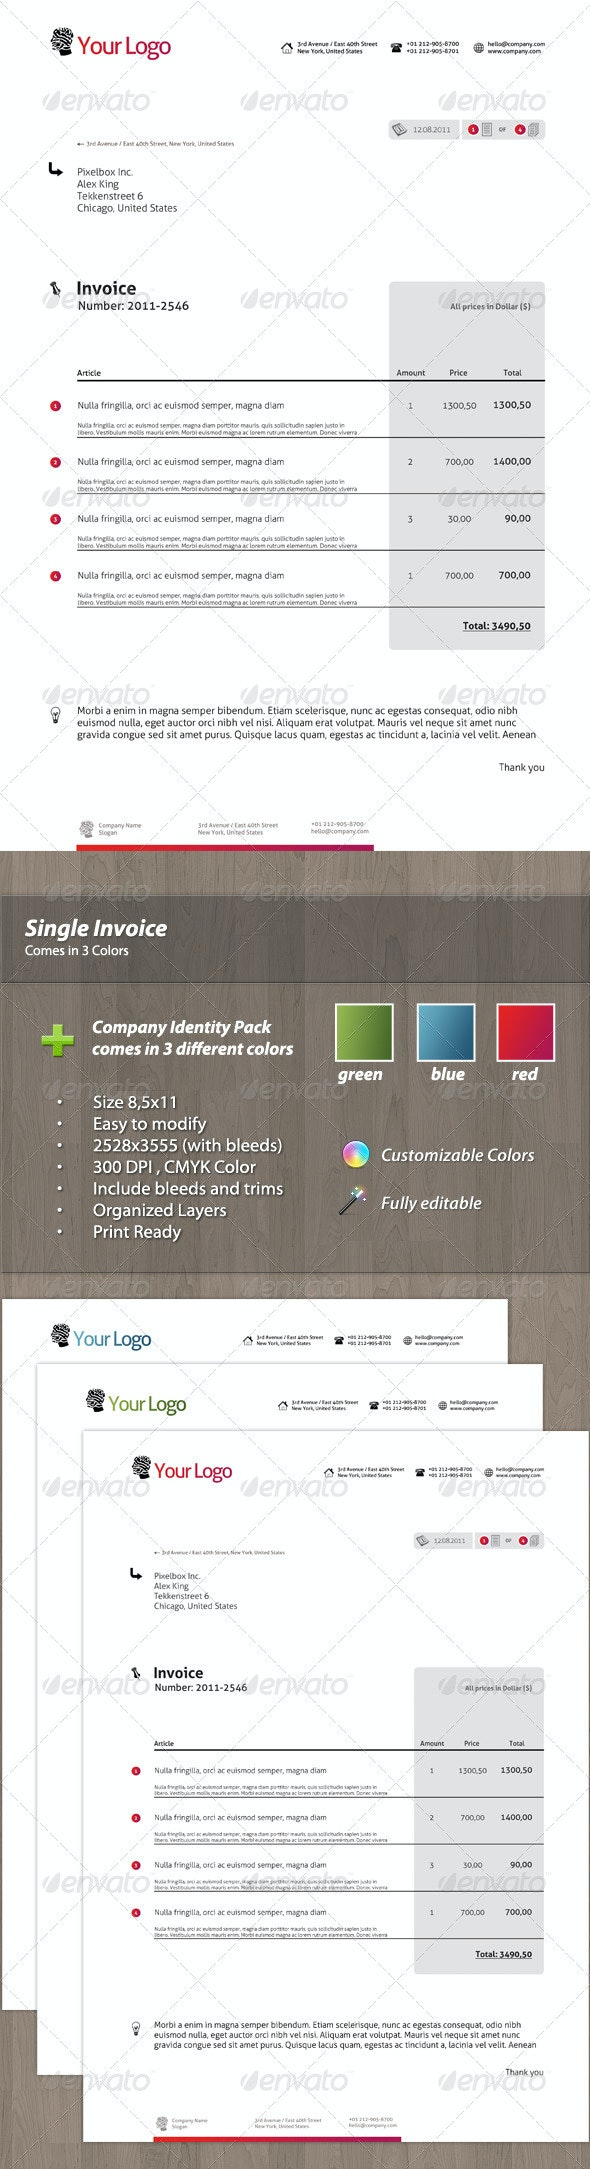 Modern Single Invoice - Proposals & Invoices Stationery